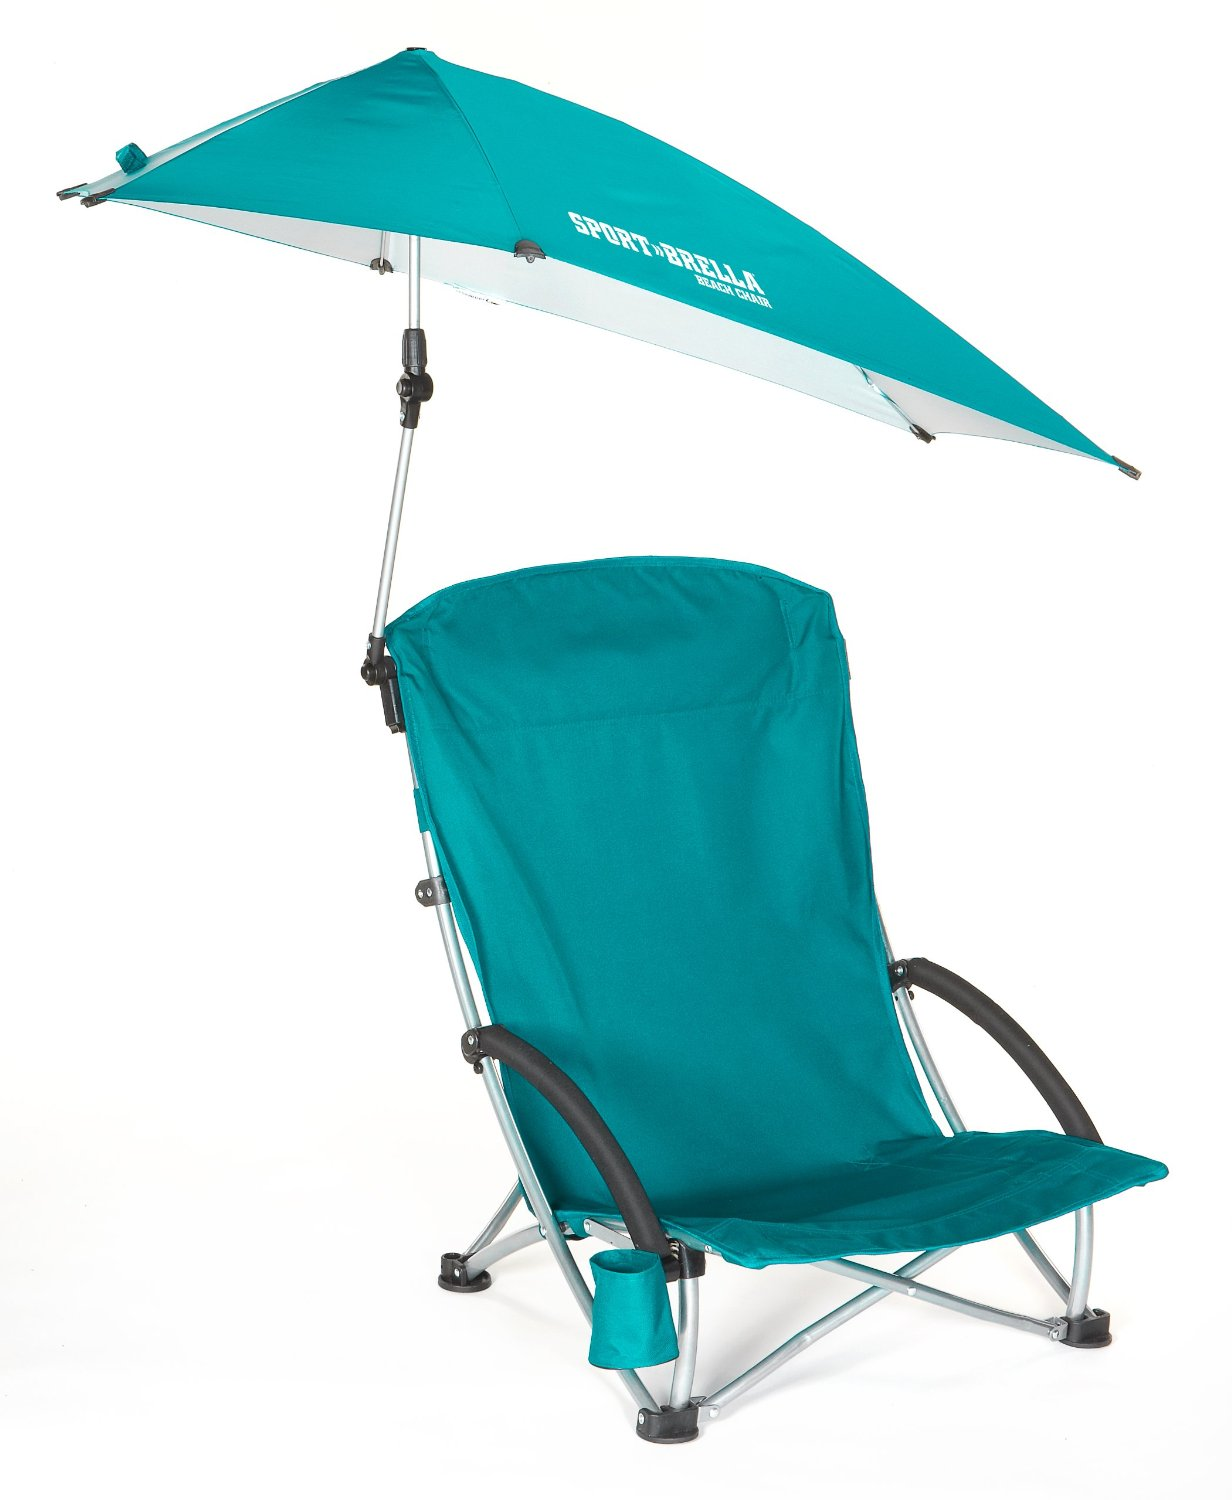 The beach umbrella support bars cross in the back of the chair and ...